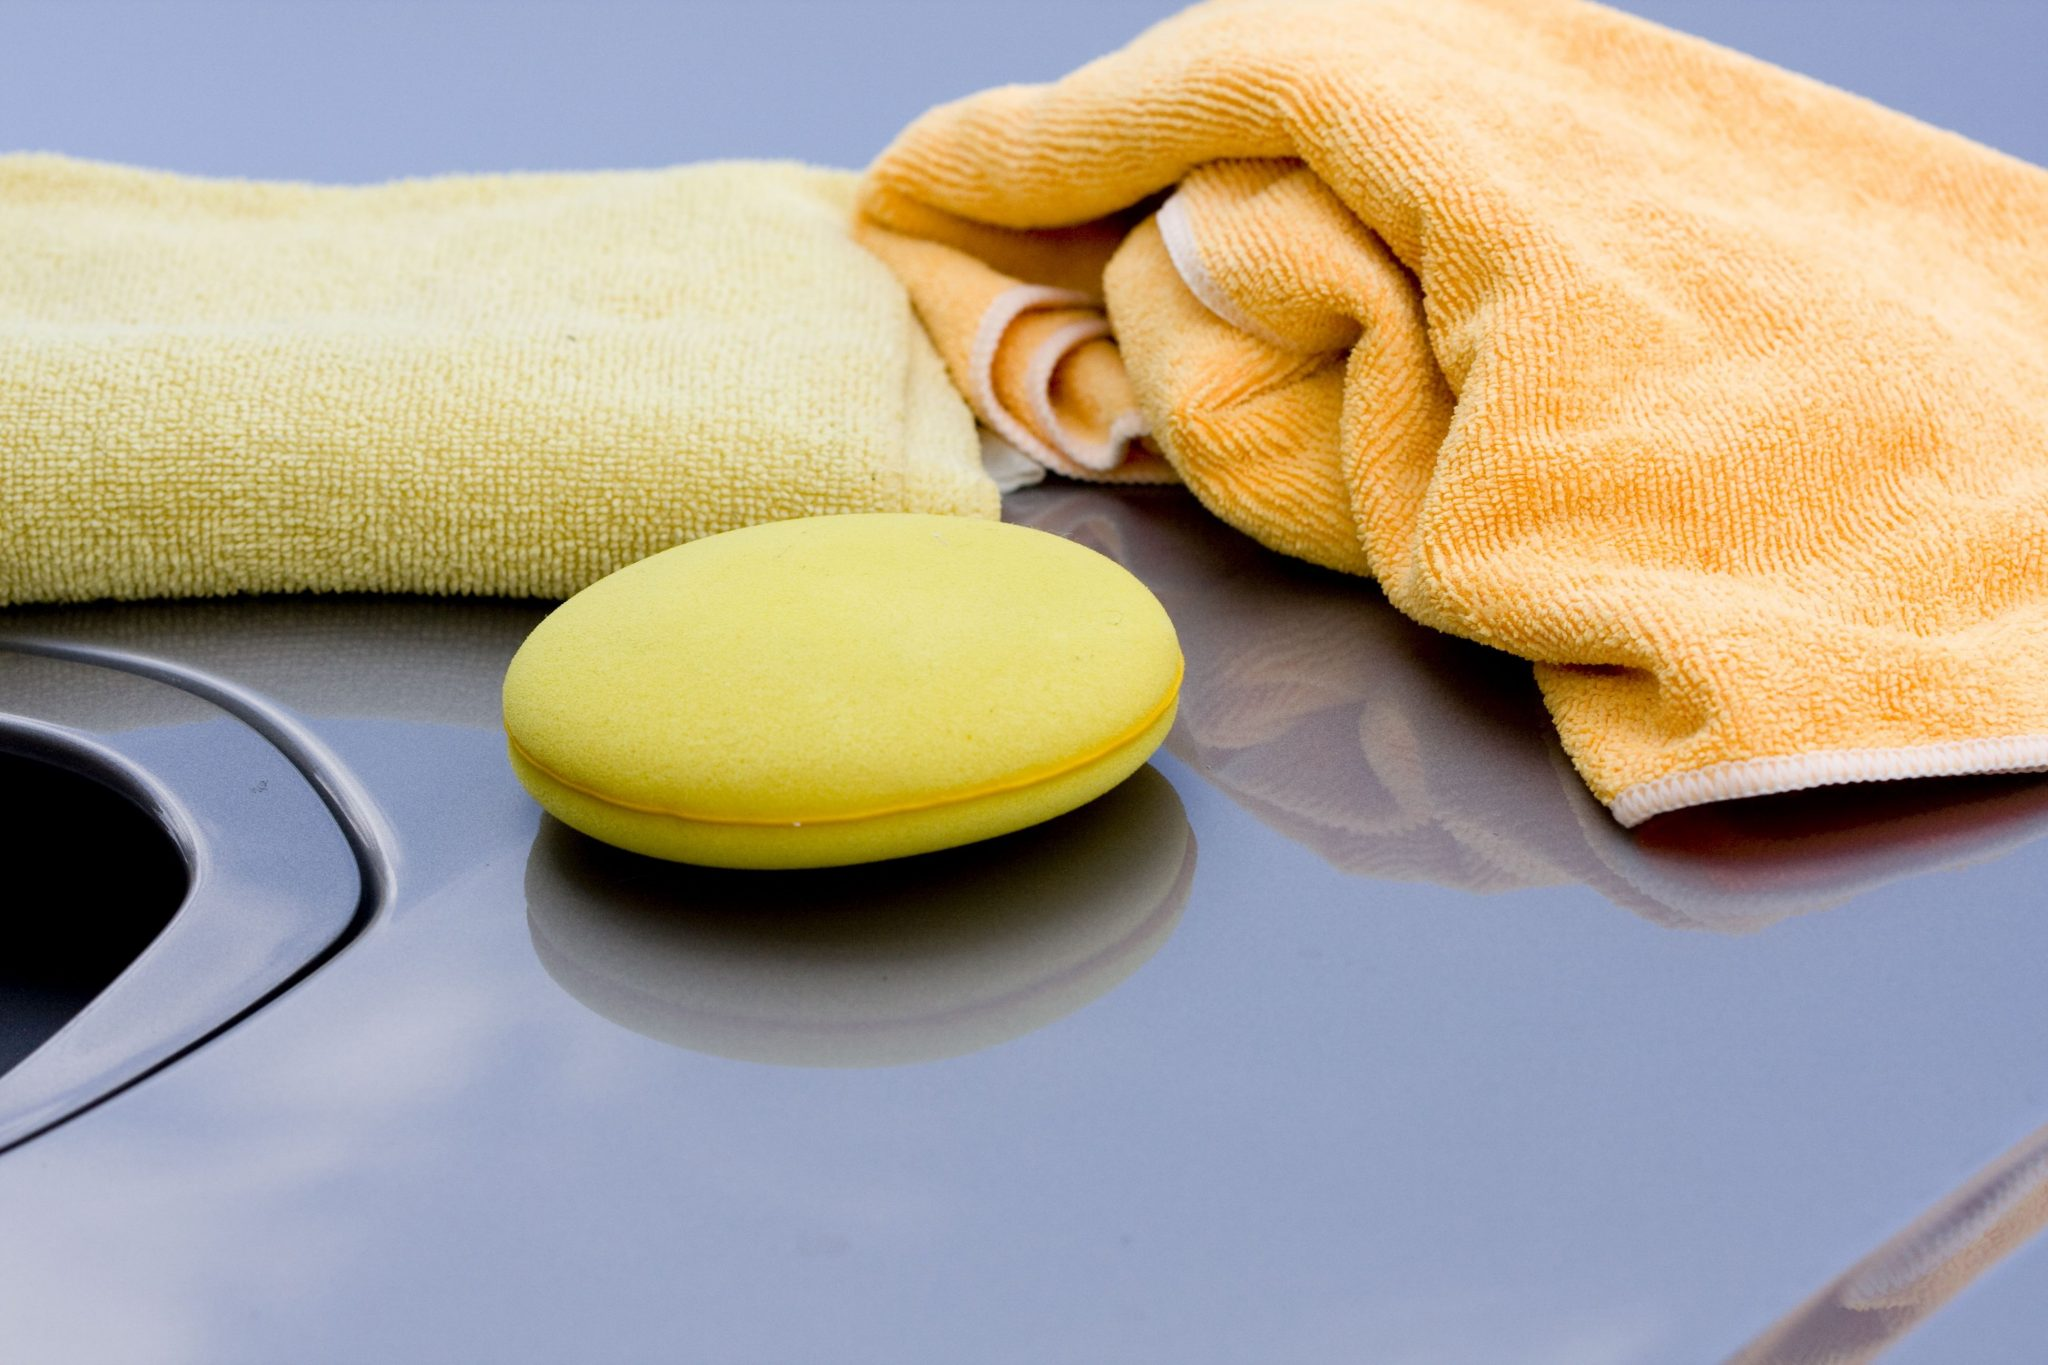 Premier Auto Detailing experts explain what wax does for cars–and when you know a car needs to be waxed.